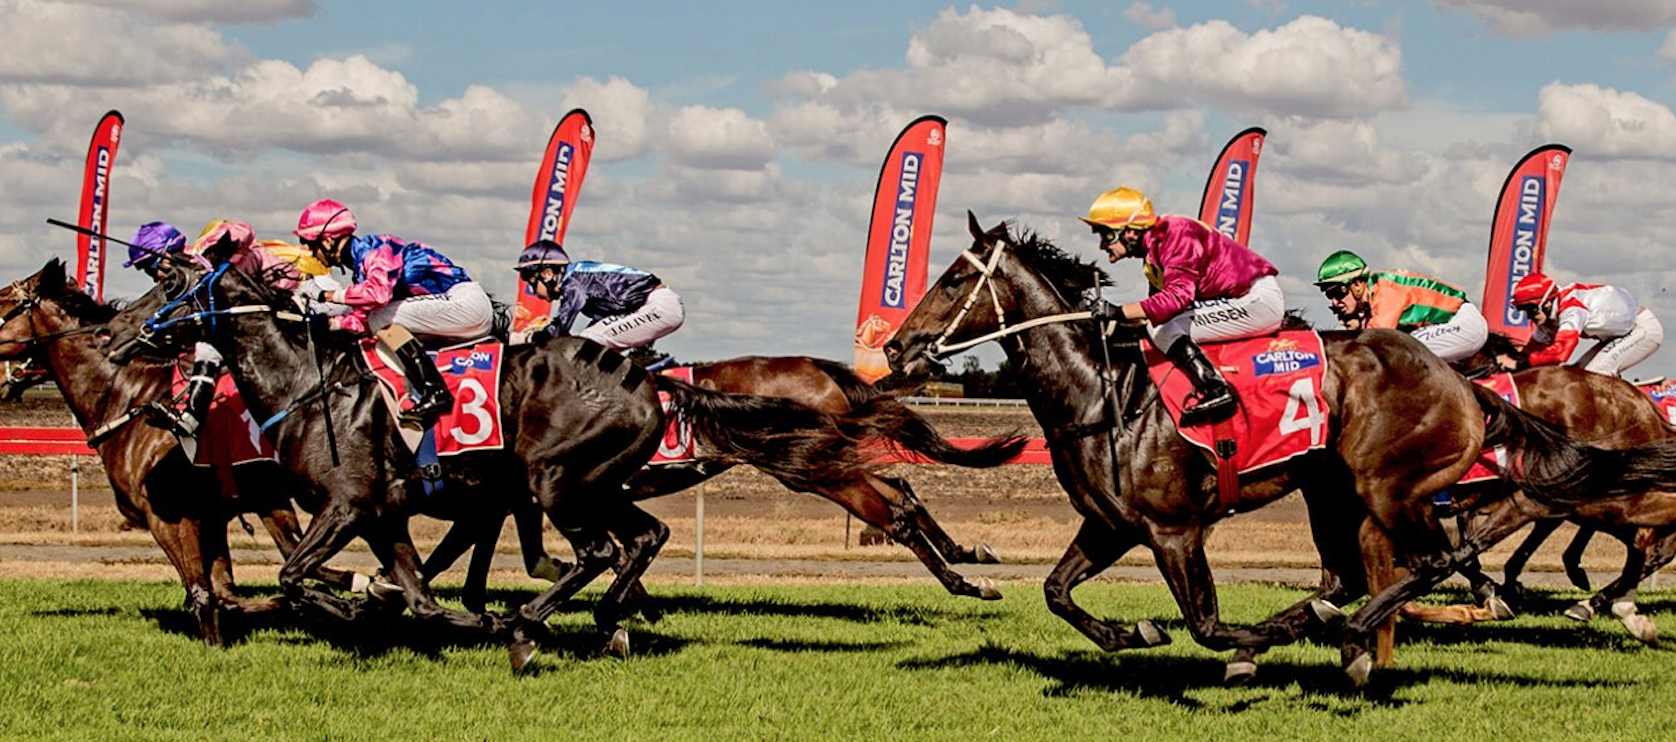 Things to do in Dalby, Dalby races